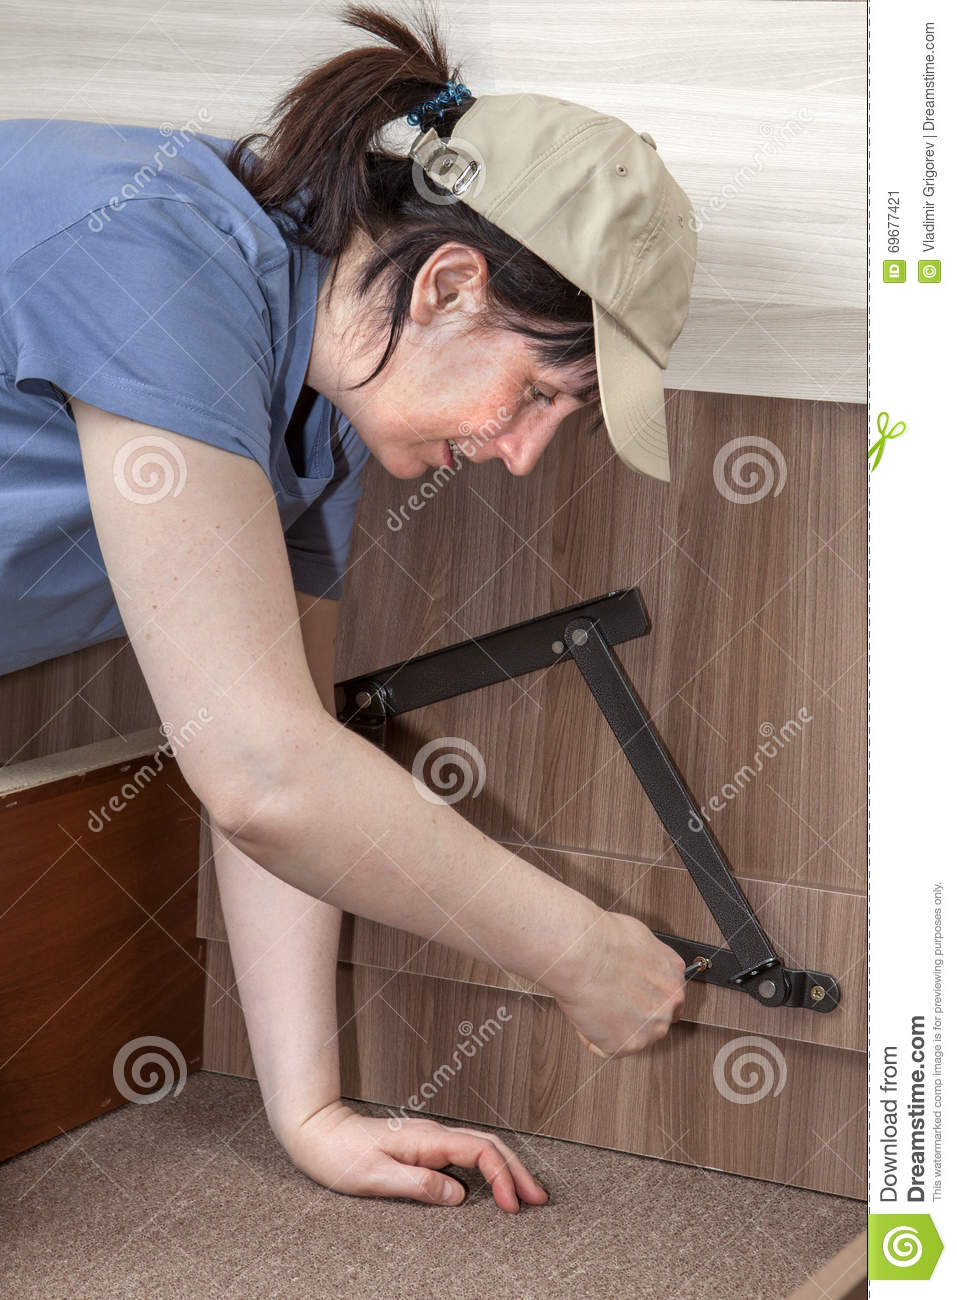 Woman Herself Assembles Furniture, She Screws Lifting Bed Hinge